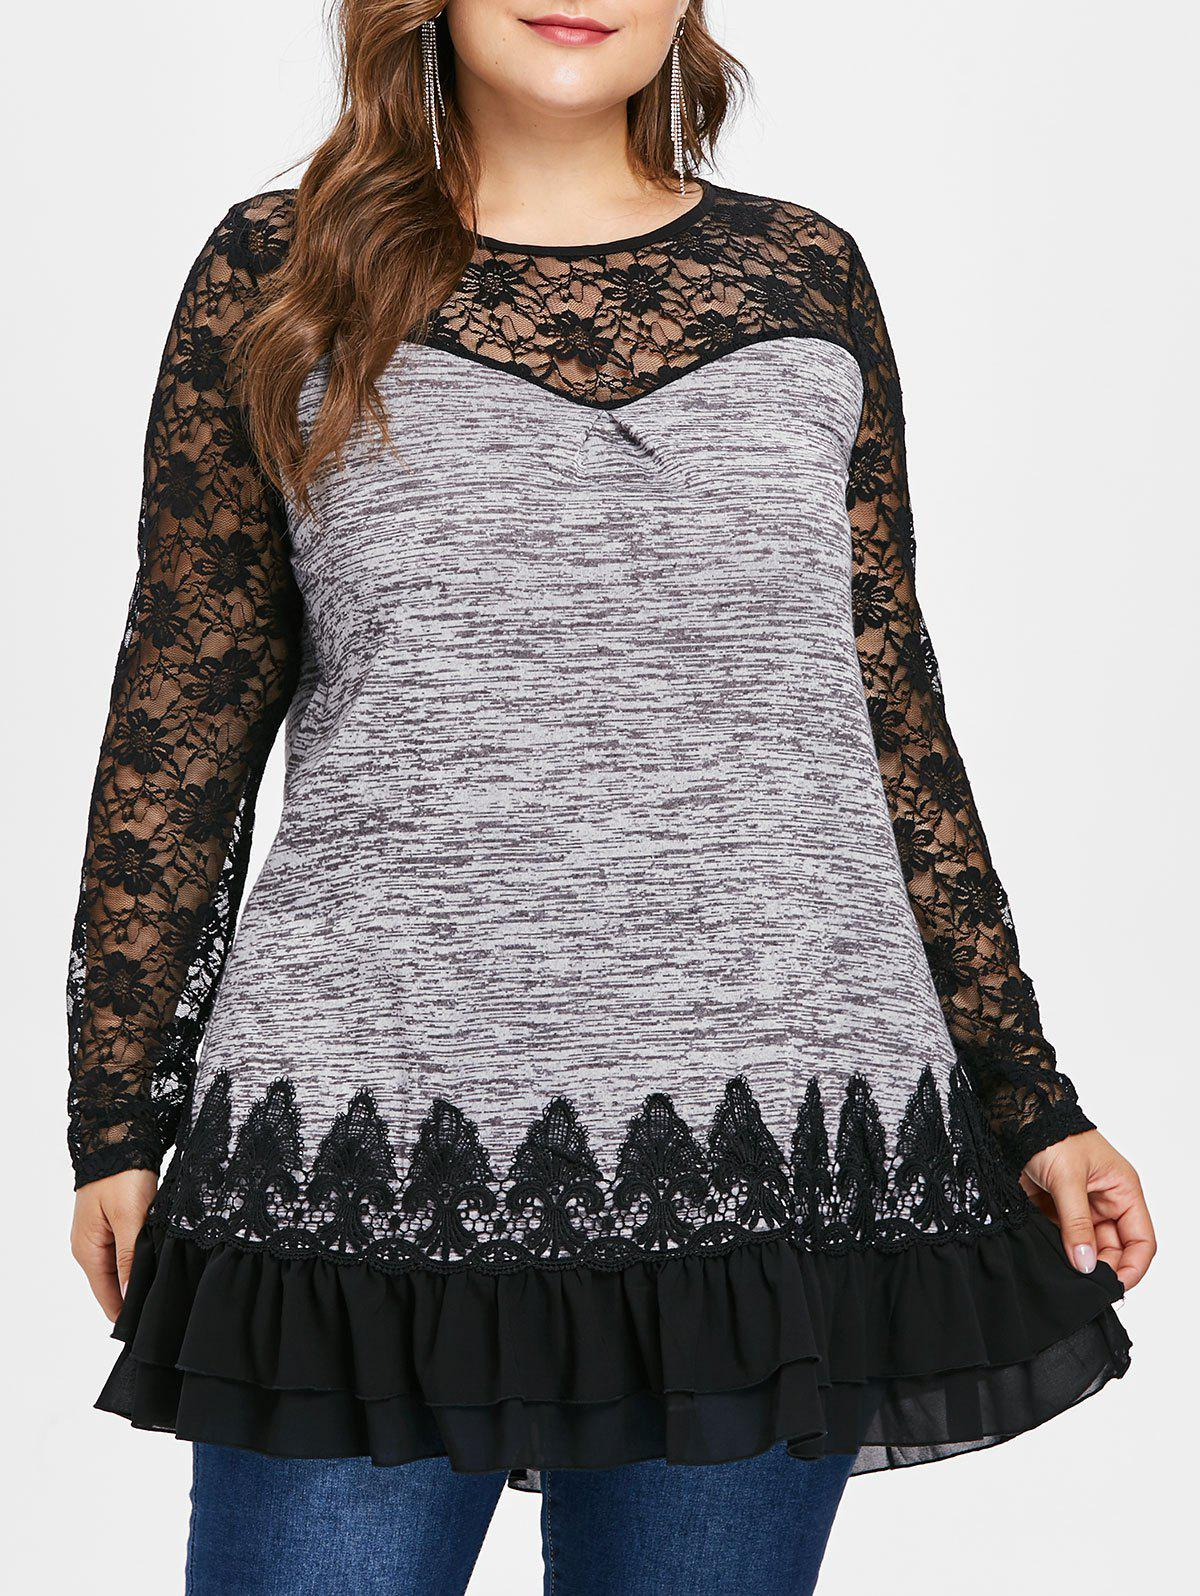 Hot Plus Size Lace Insert Sheer Ruffled Tunic Tee